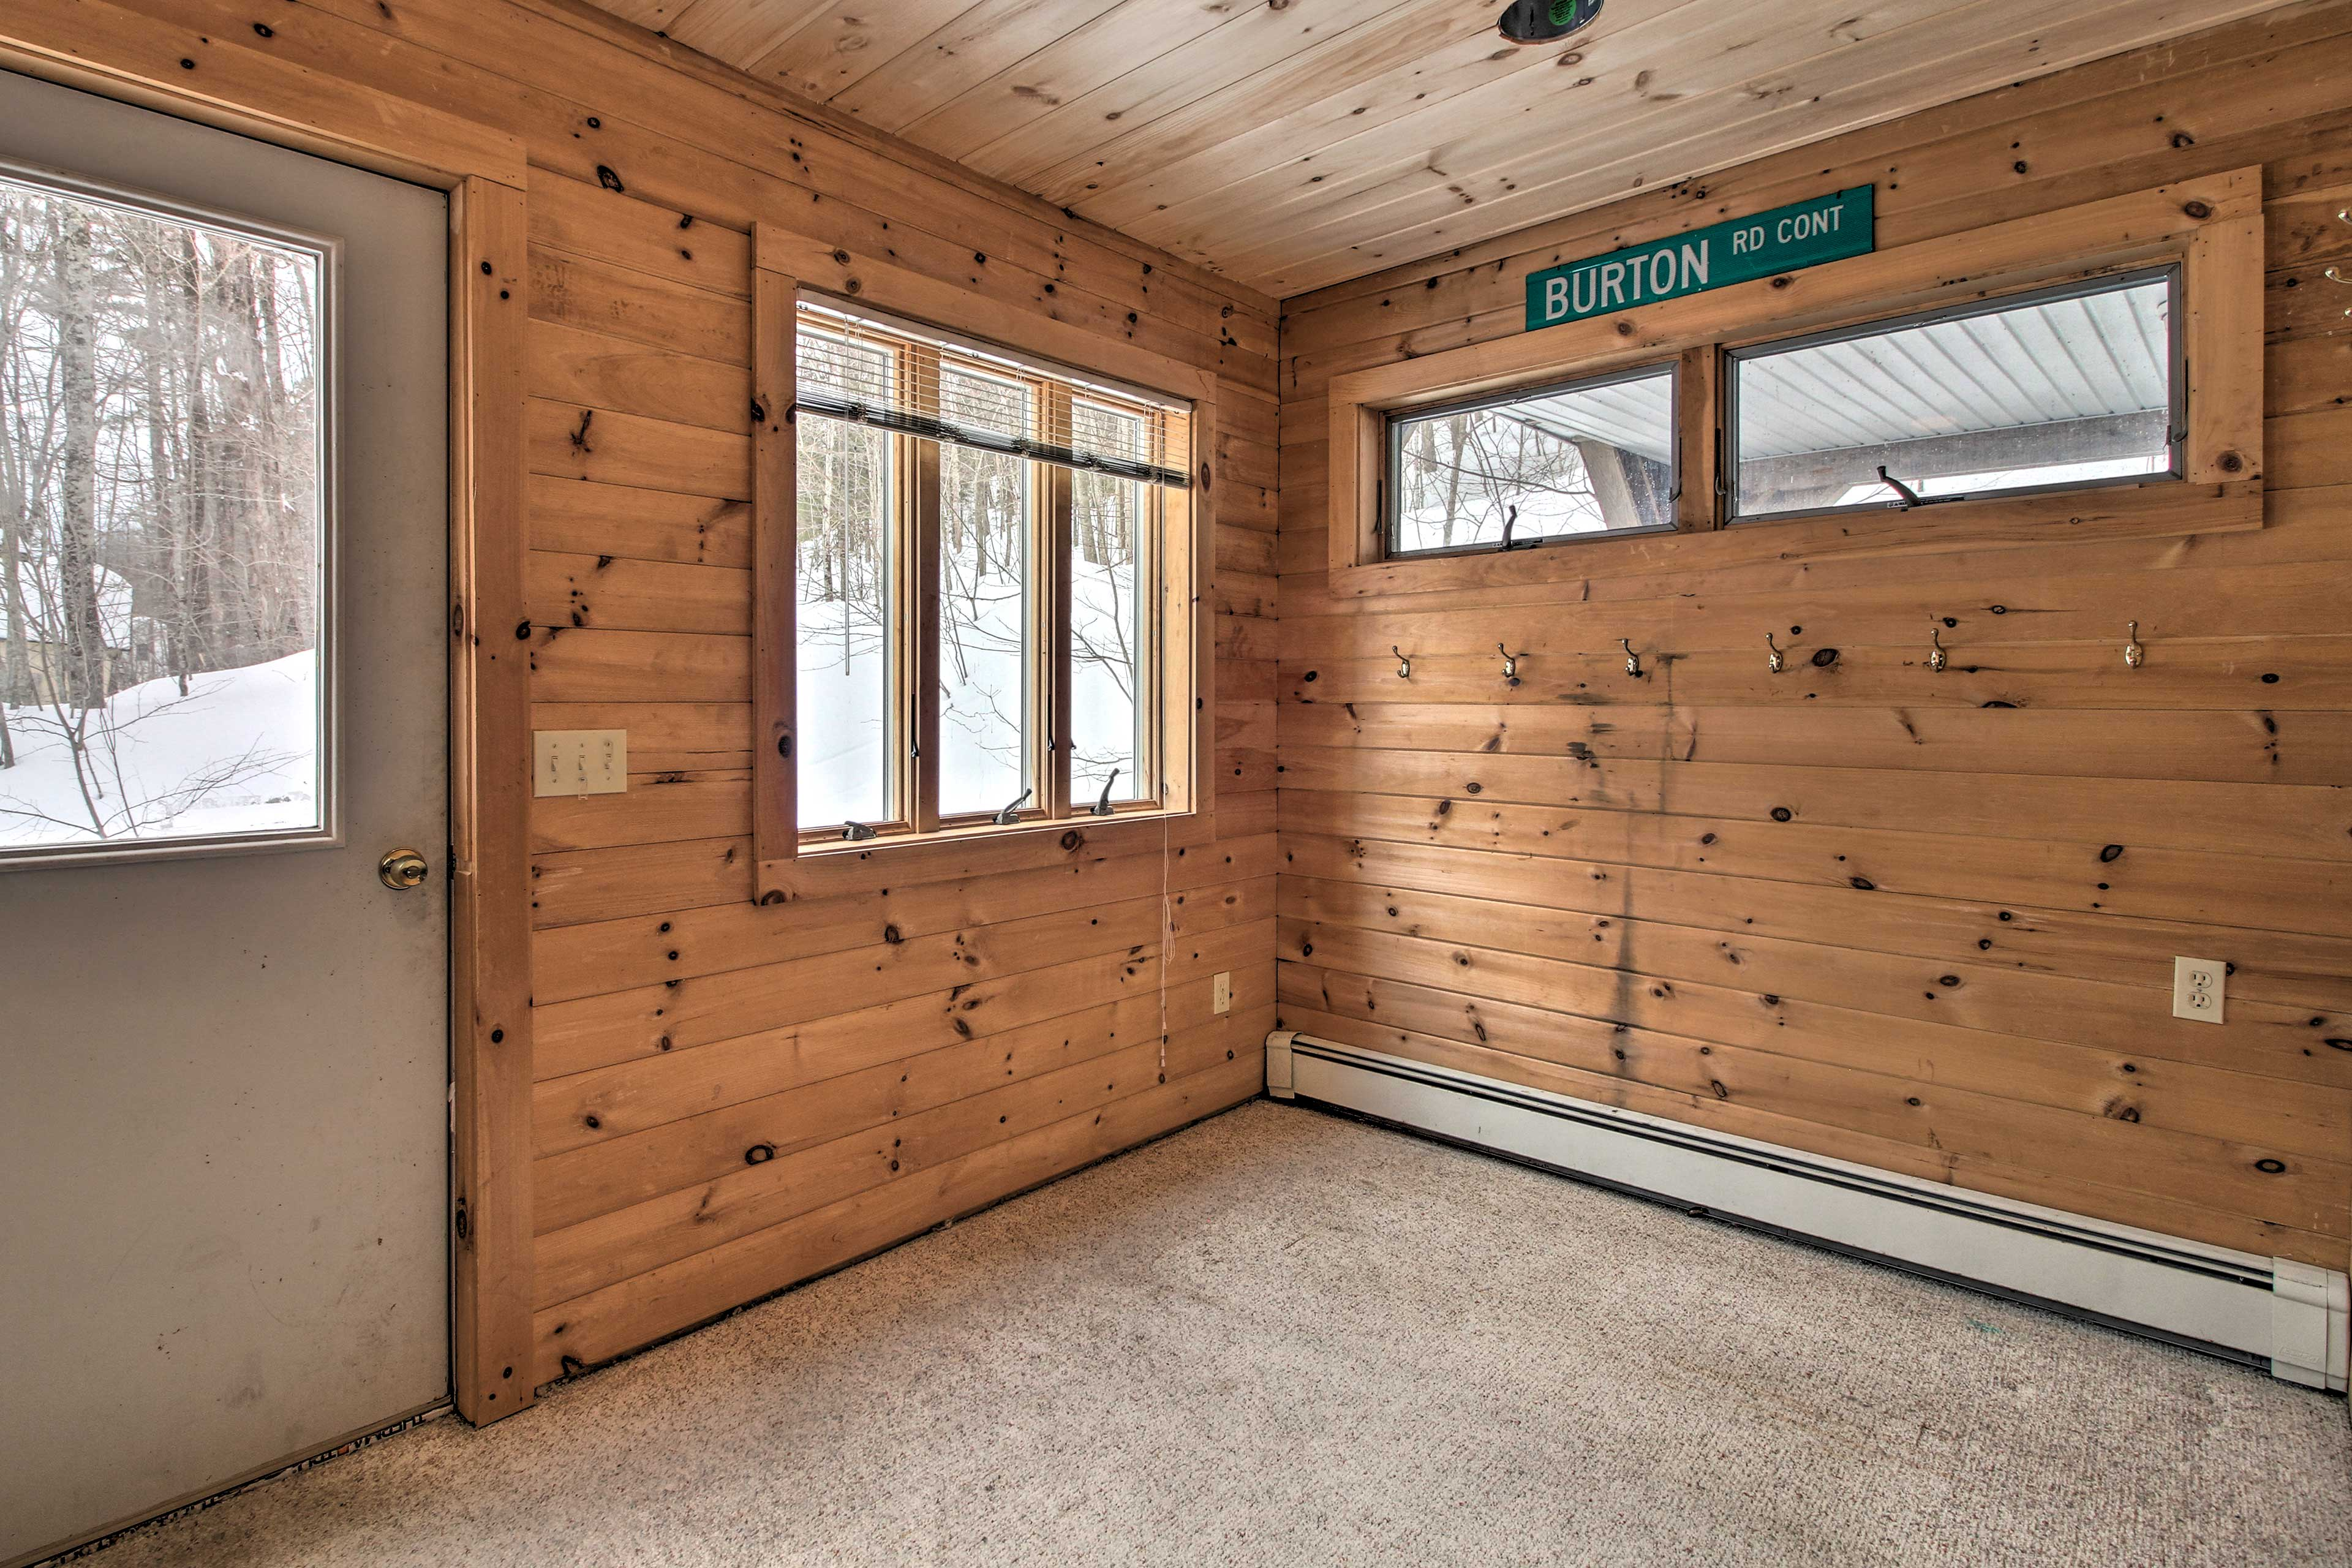 This room is ideal for storing ski equipment.